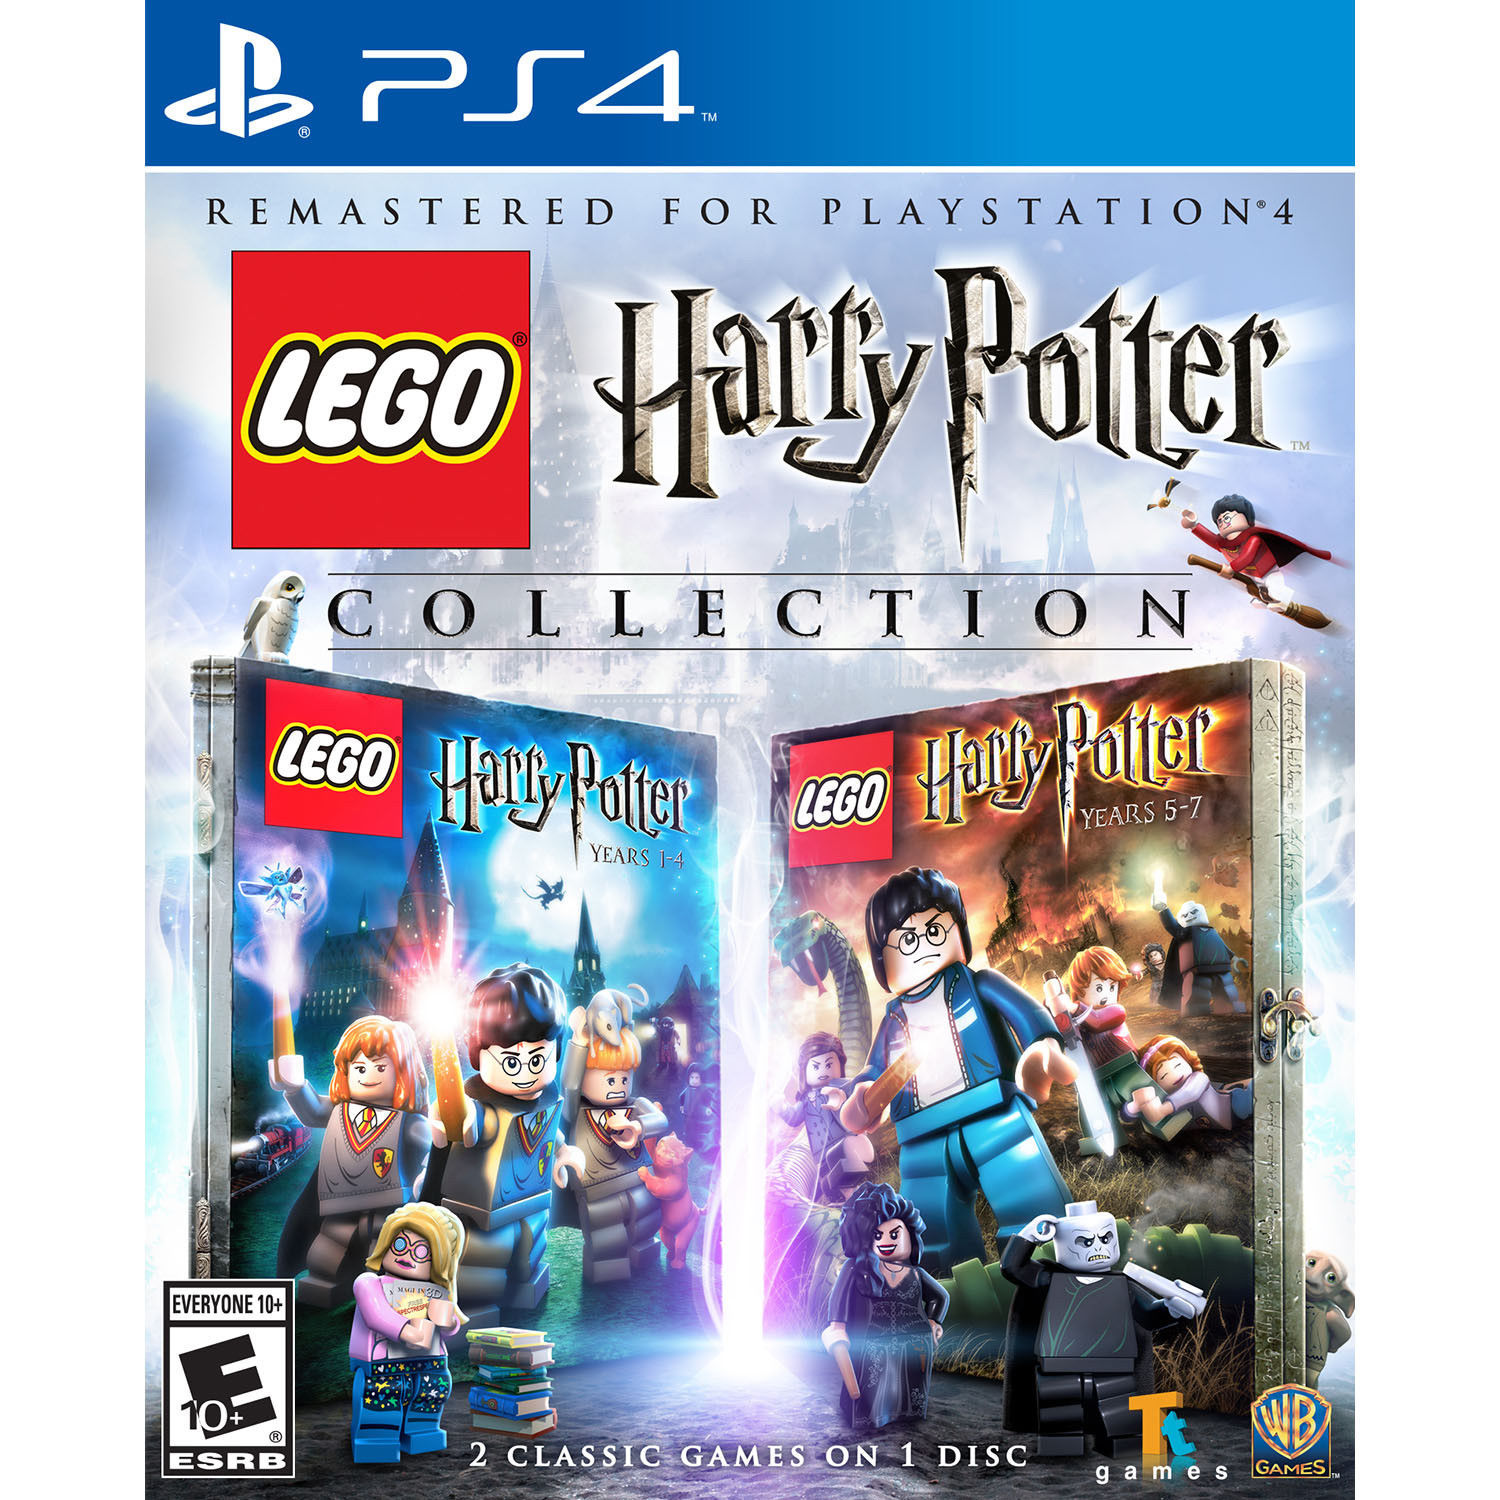 LEGO Harry Potter Collection PS4 [Brand New] Playstation 4